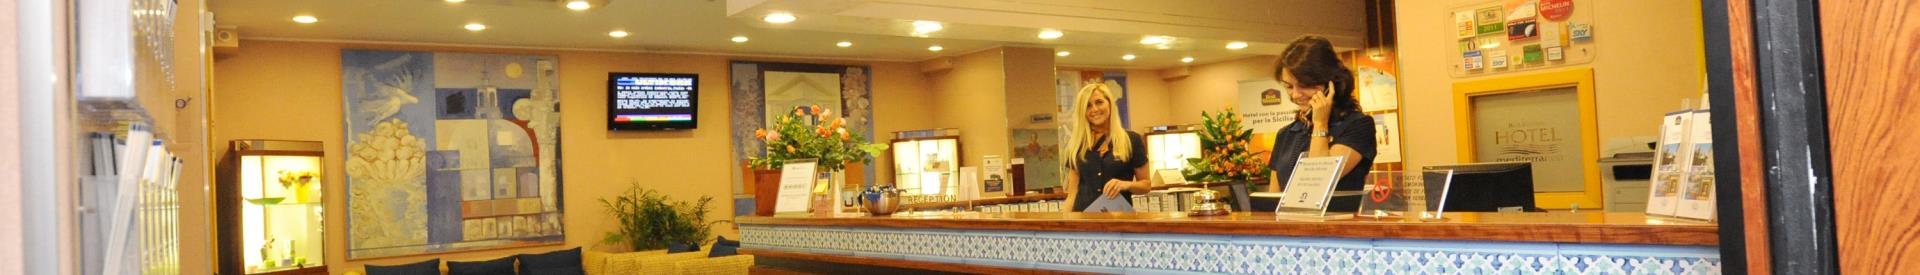 The philosophy of Best Western Hotel Mediterraneo Catania